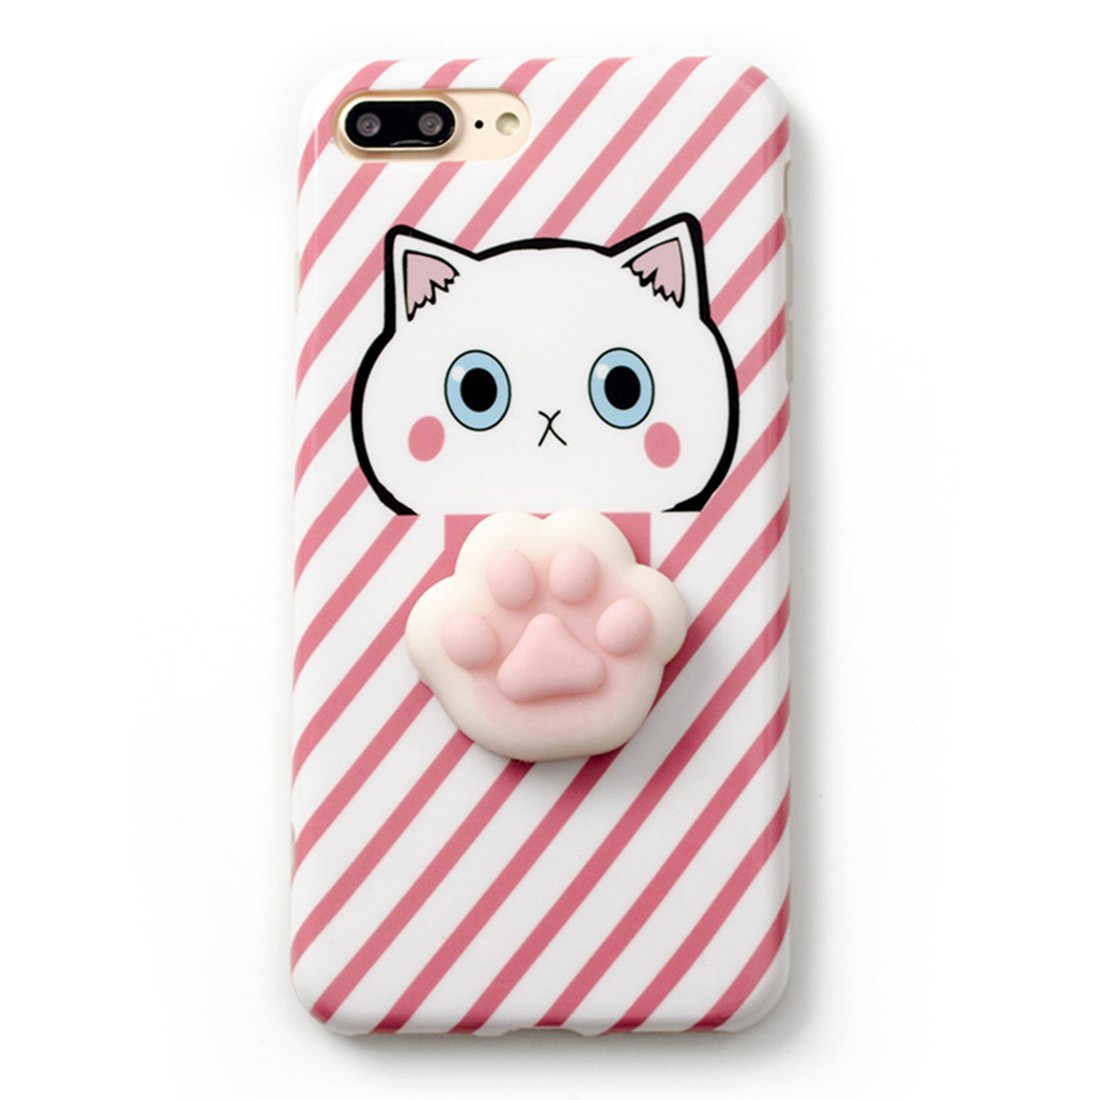 outlet store 57025 72b0b iPhone 7 Plus Case, Tricess 3D Cute Soft Silicone Squishy Cat Phone Case  for iPhone 7 Plus